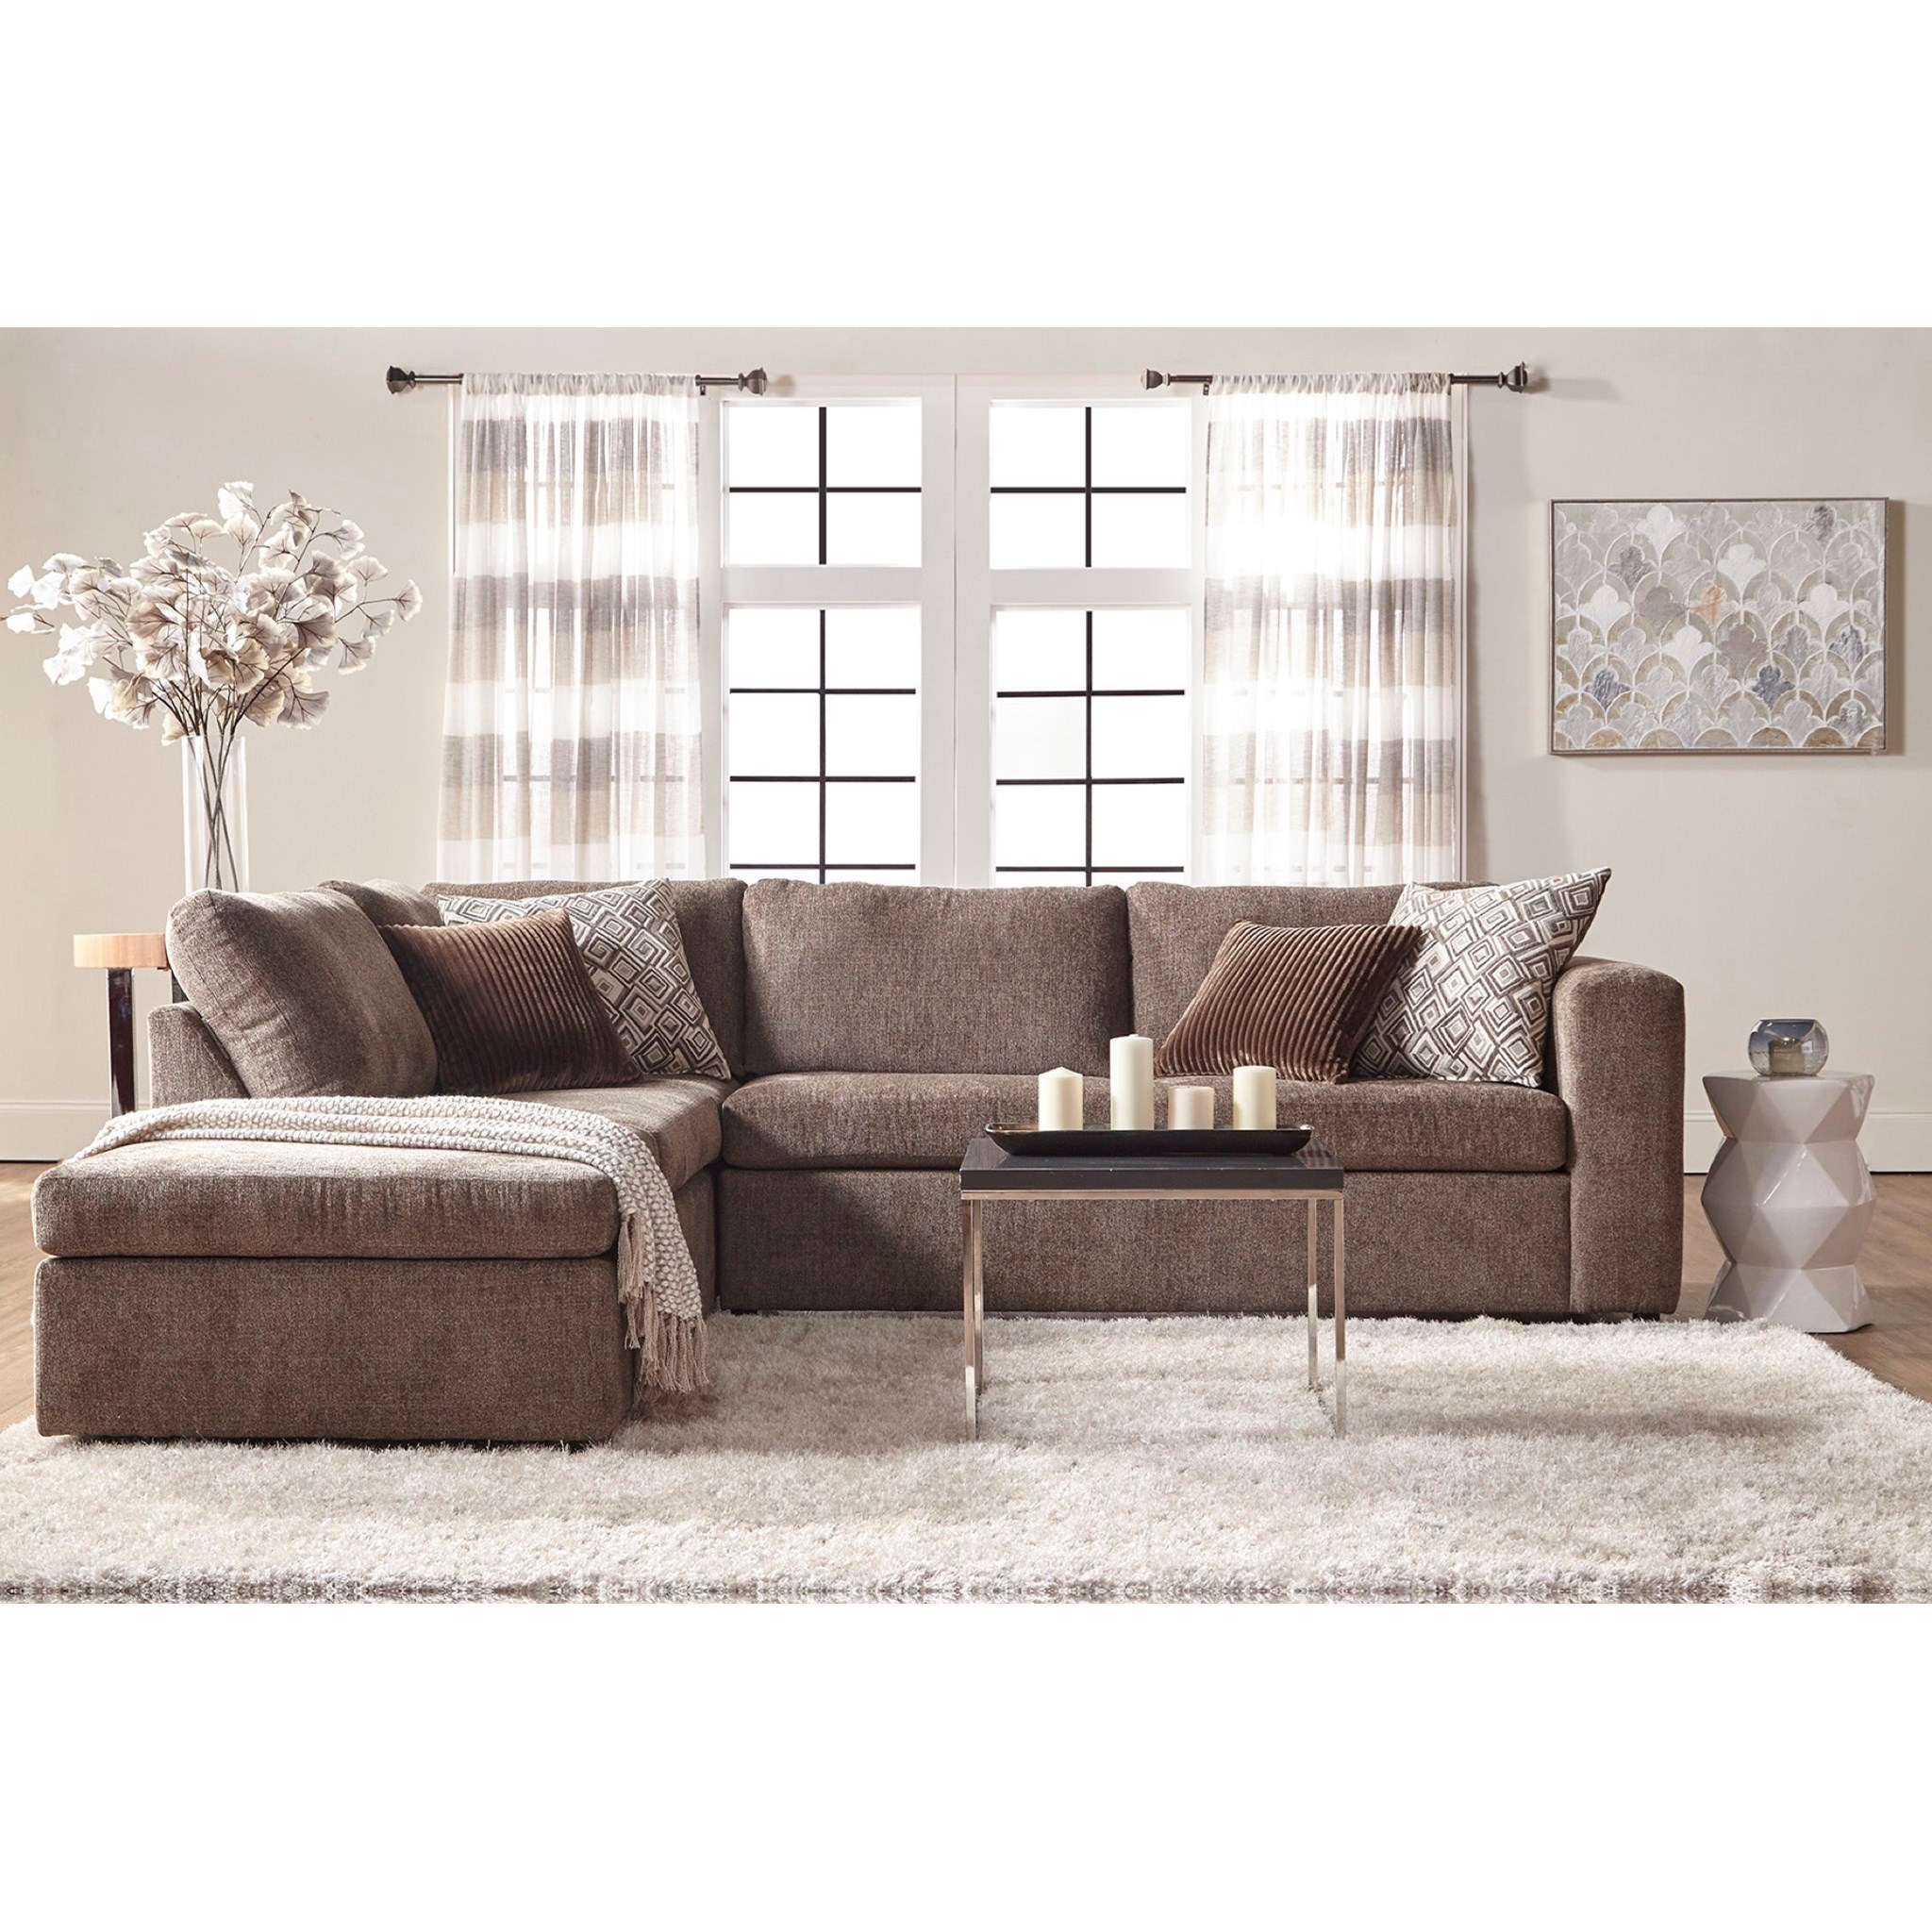 Serta Upholstery Angora Casual Contemporary Sectional Sofa with Chaise  sc 1 st  Rotmans : serta sectional - Sectionals, Sofas & Couches